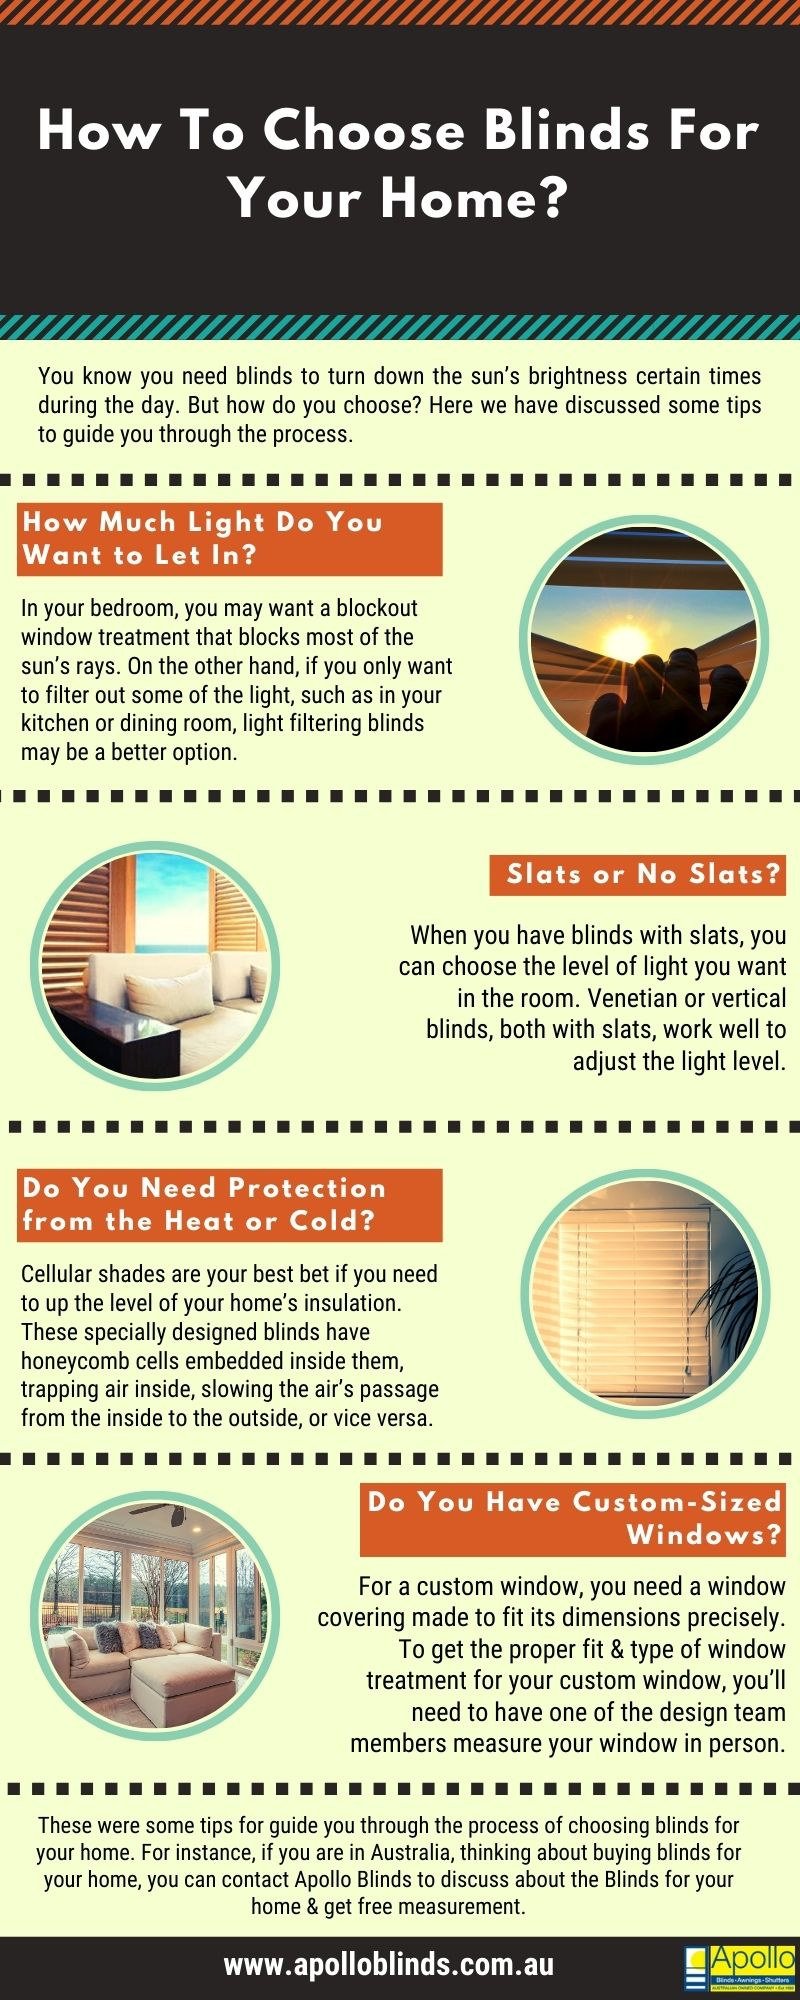 How To Choose Blinds For Your Home?